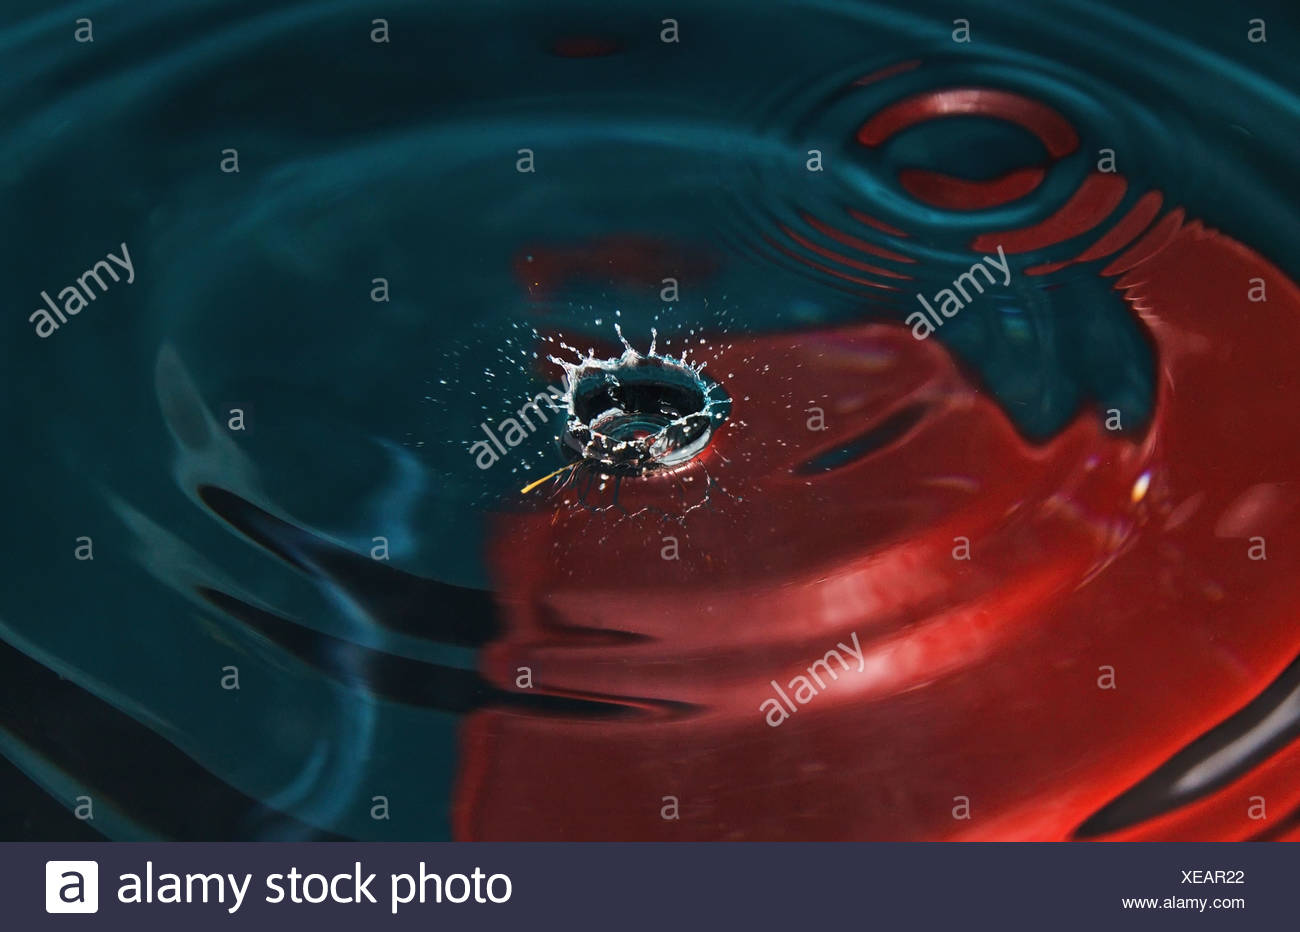 a drop of water hitting a surface of water - Stock Image